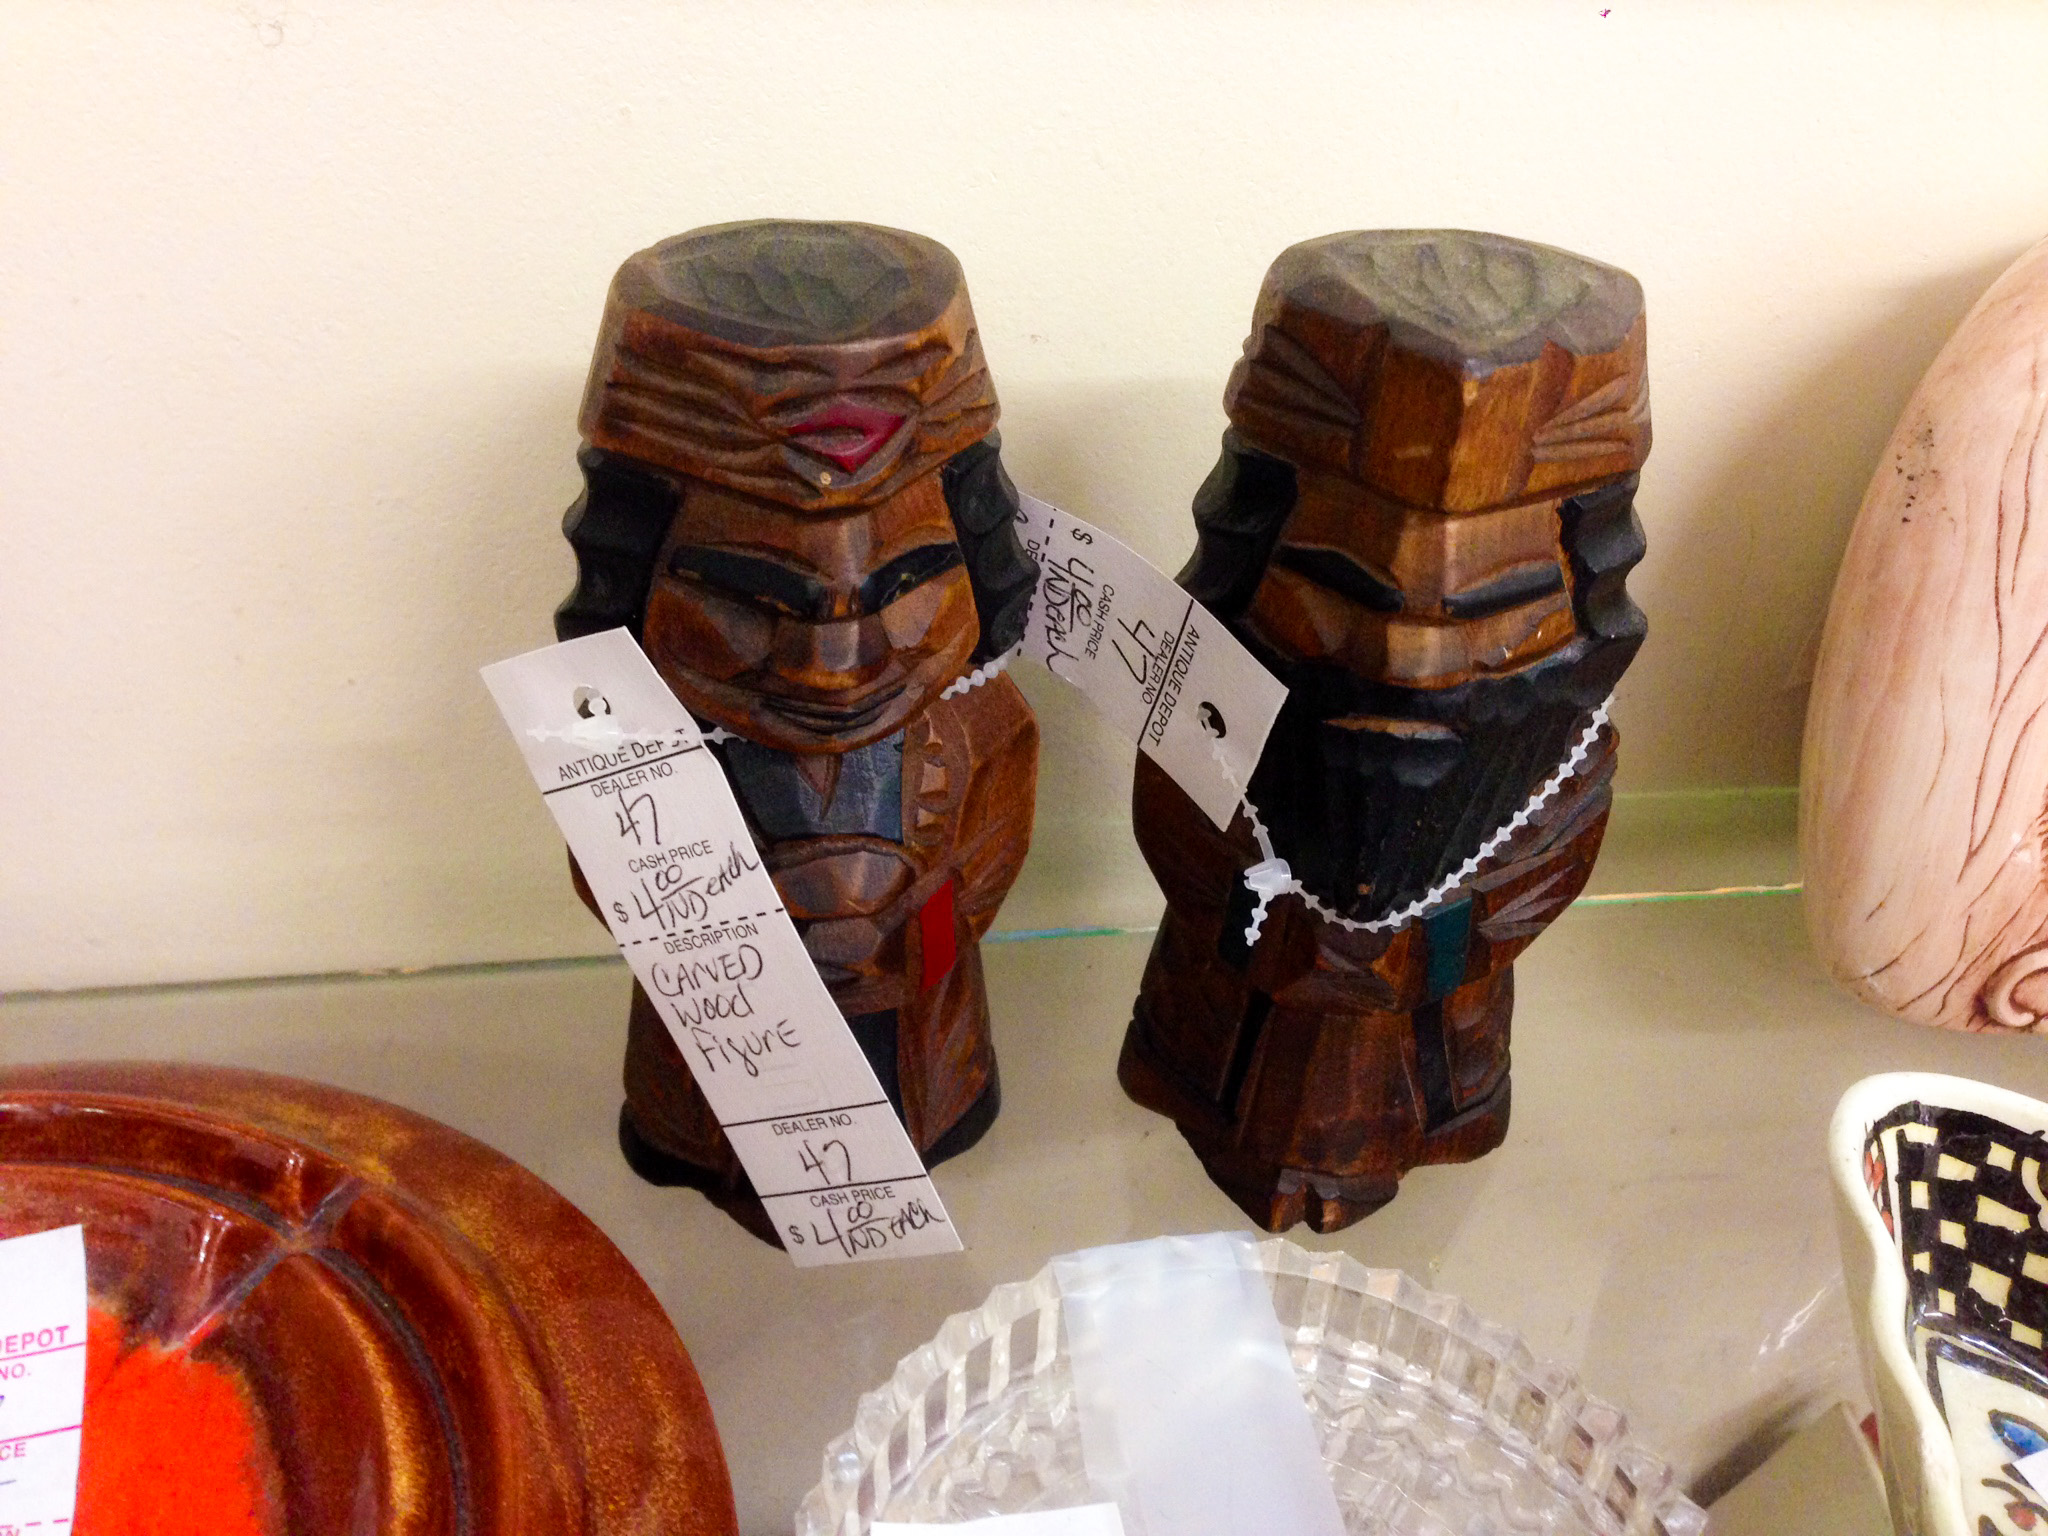 Ainu and the Antique Store